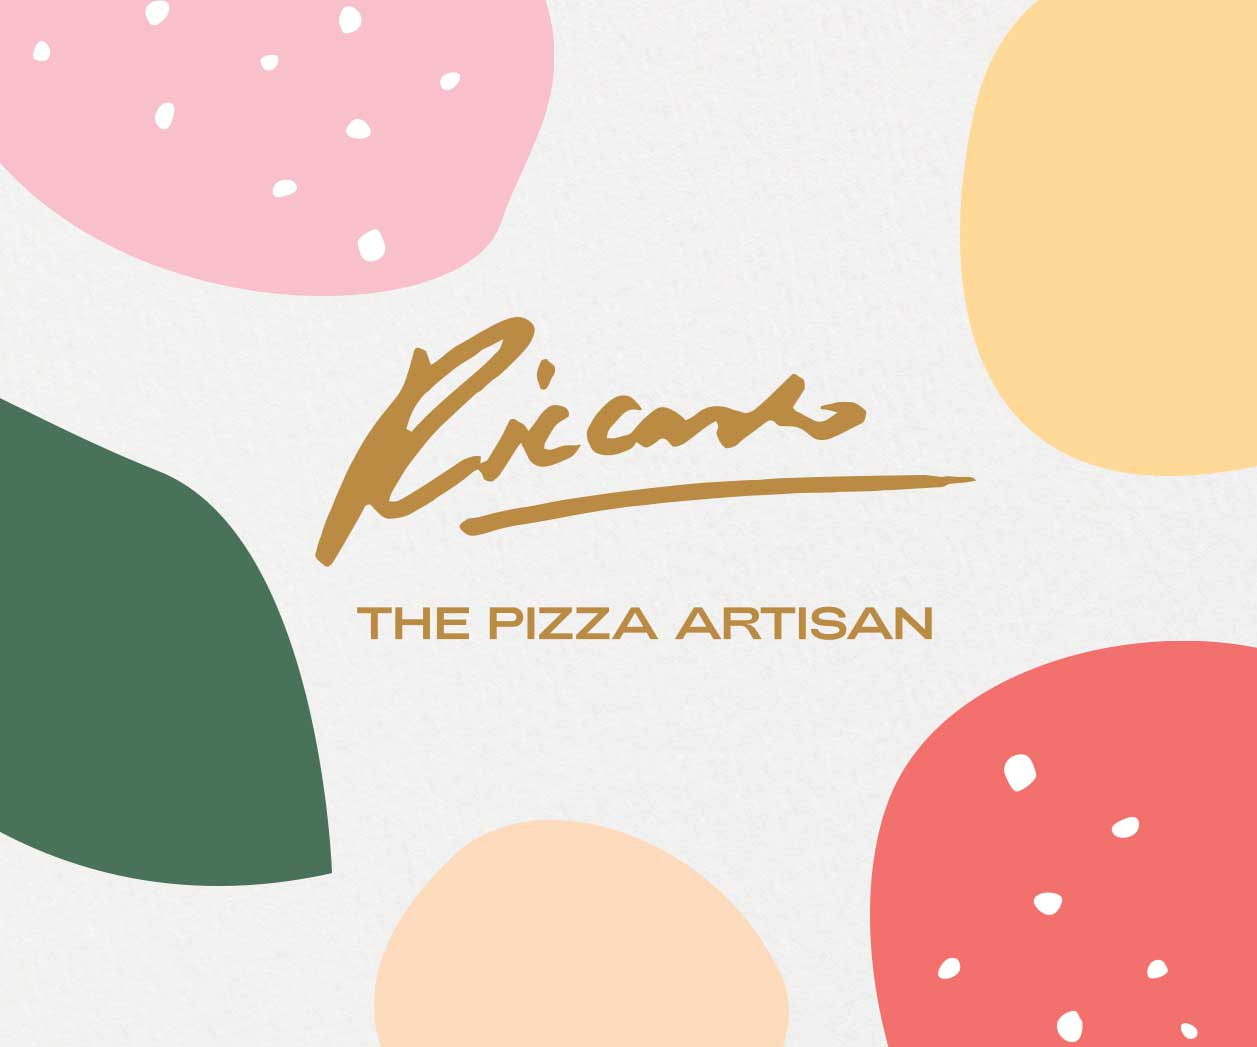 Branding Design project including Brand Naming and Packaging Design for FMCG food product retail brand Riccardo Pizza in Sydney Australia, thumbnail image